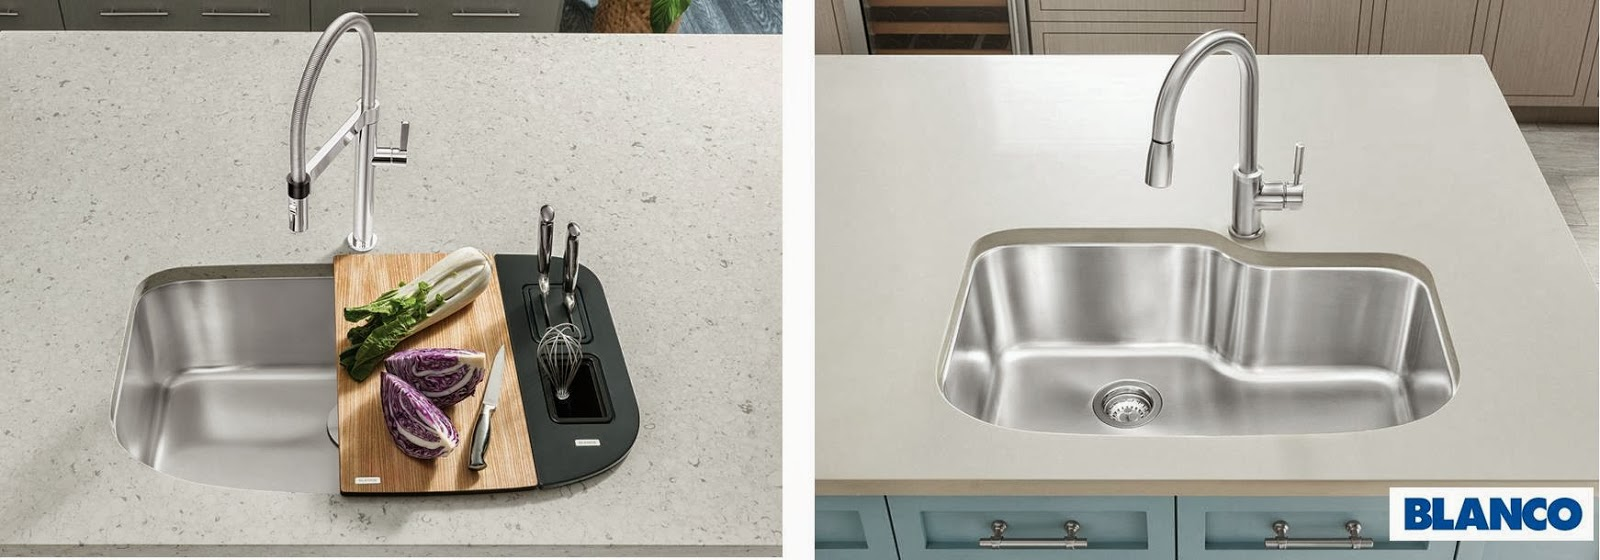 kitchen sinks stunning blanco with cheap blanco sinks blanco sinks